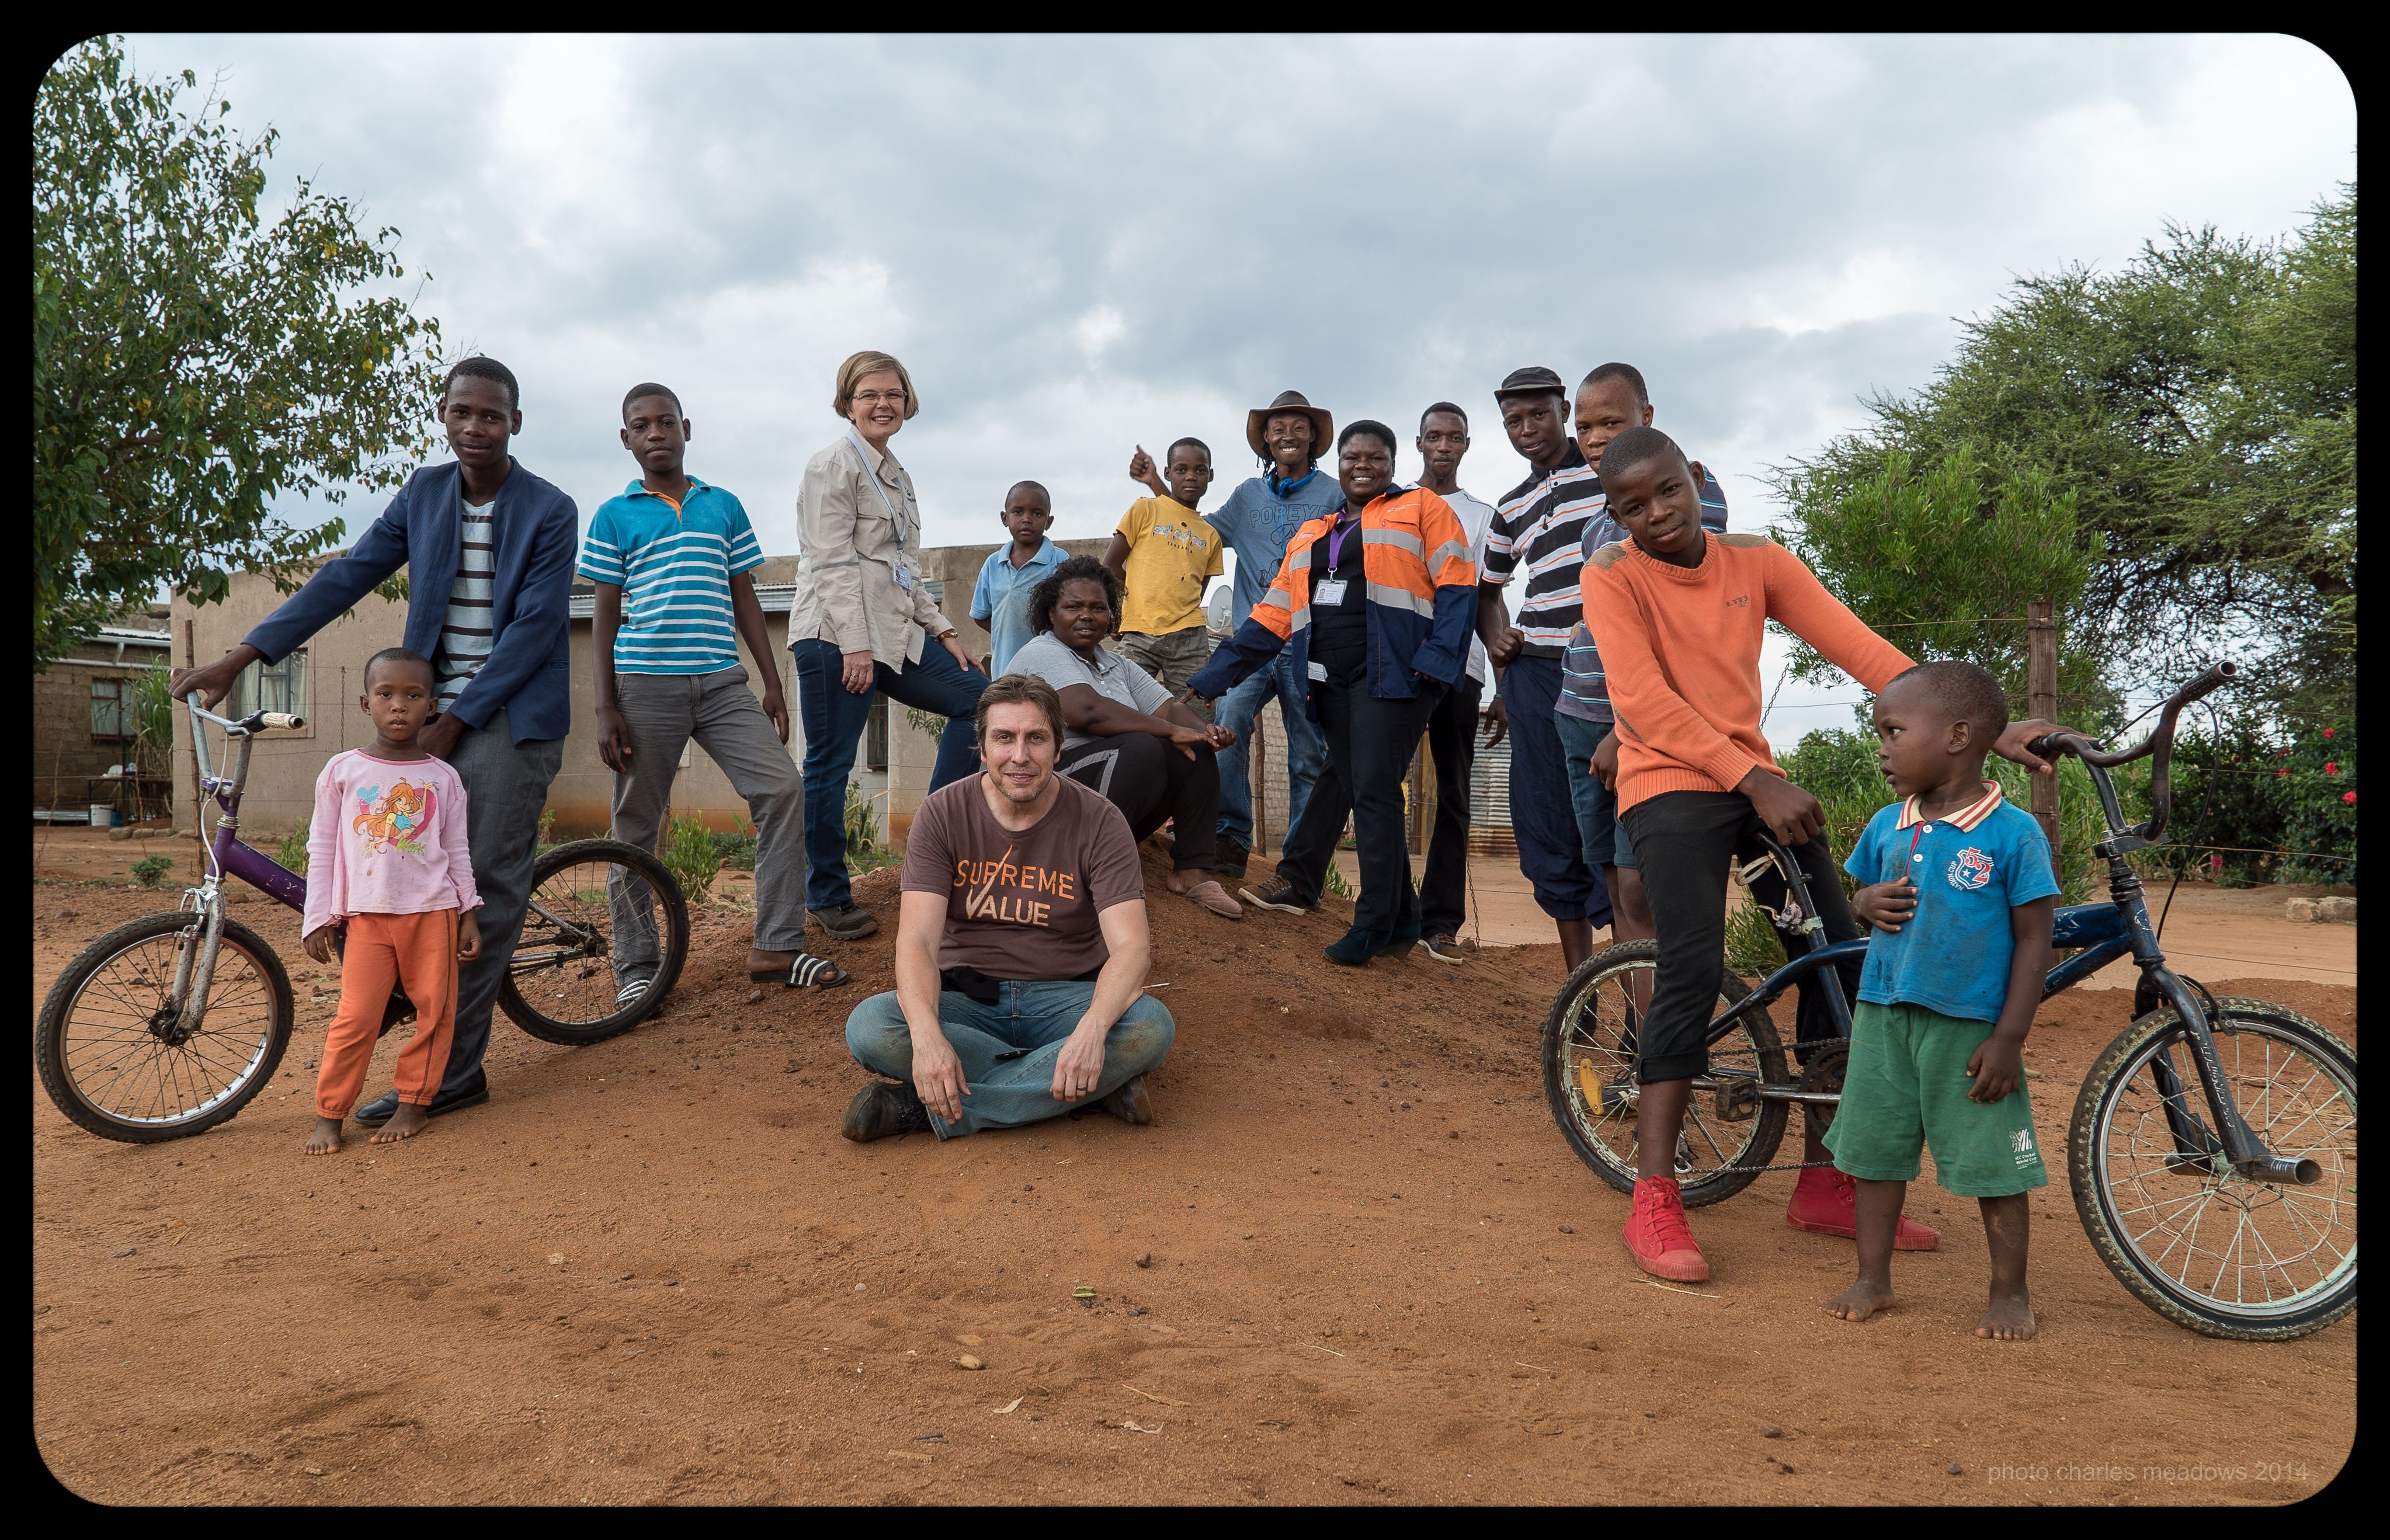 After the final shot for an Ivanplats corporate video (in Limpopo South Africa) we noticed that quite a few kids from the community had gathered around to watch us. Seemed like a great opportunity to get a picture of us all together.